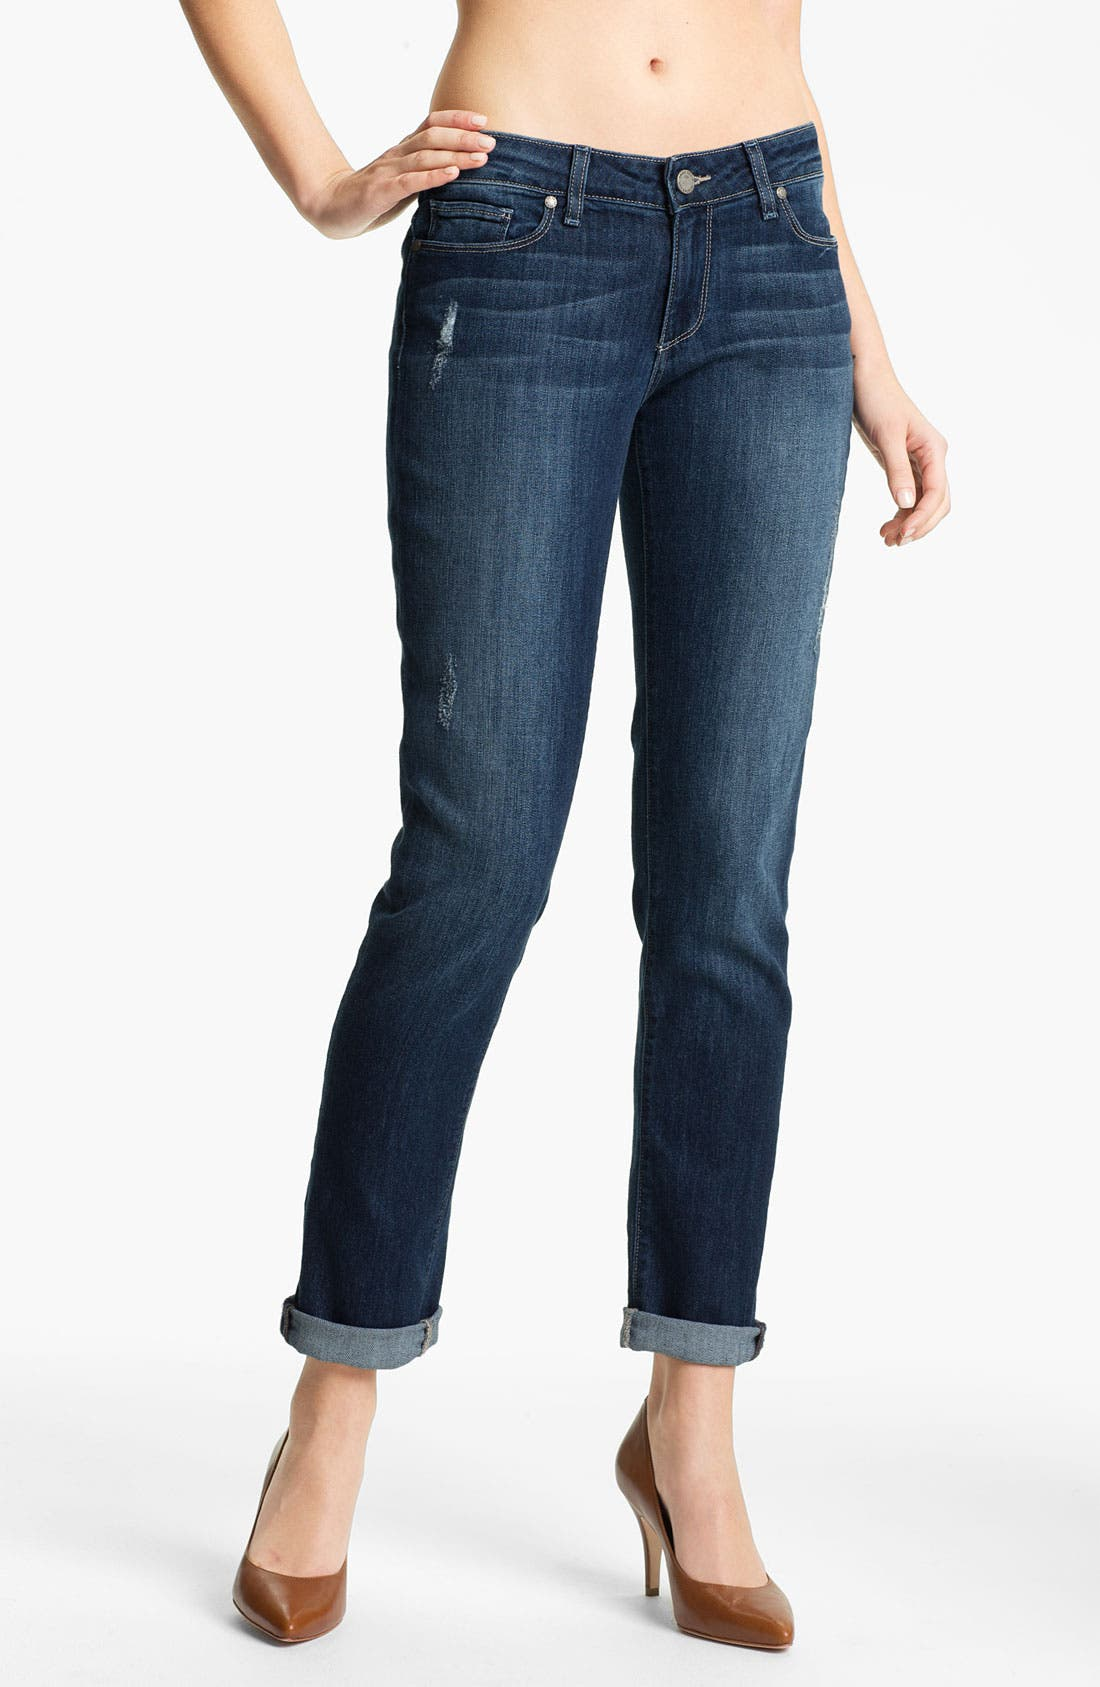 Alternate Image 1 Selected - Paige Denim 'Jimmy Jimmy' Distressed Skinny Jeans (Mandi Destruction)